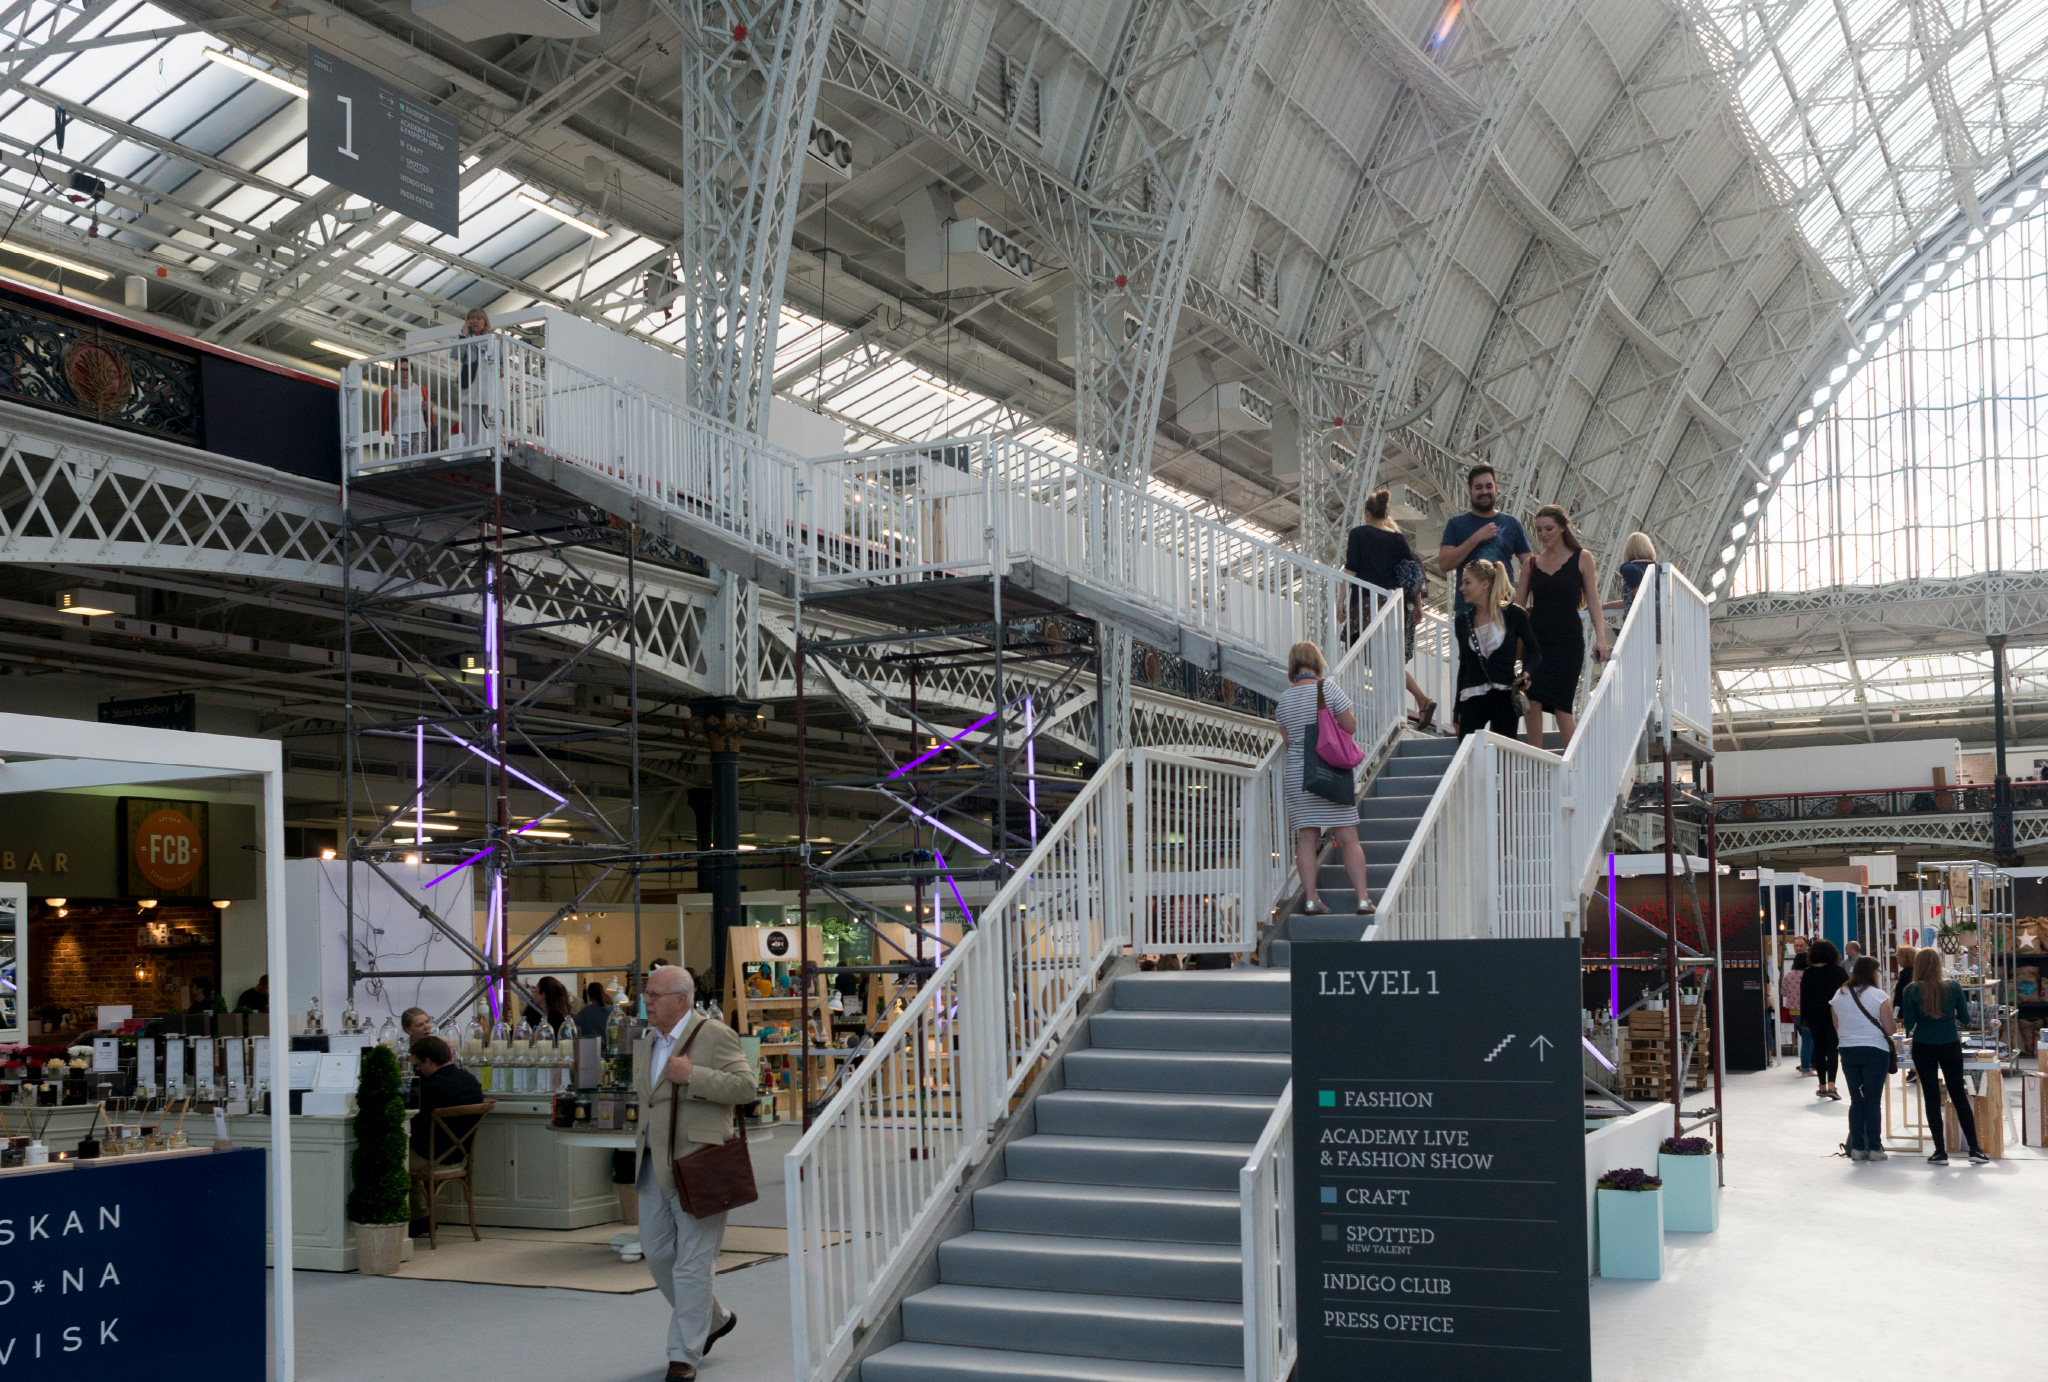 exhibition from Top Drawer in the Olympia London